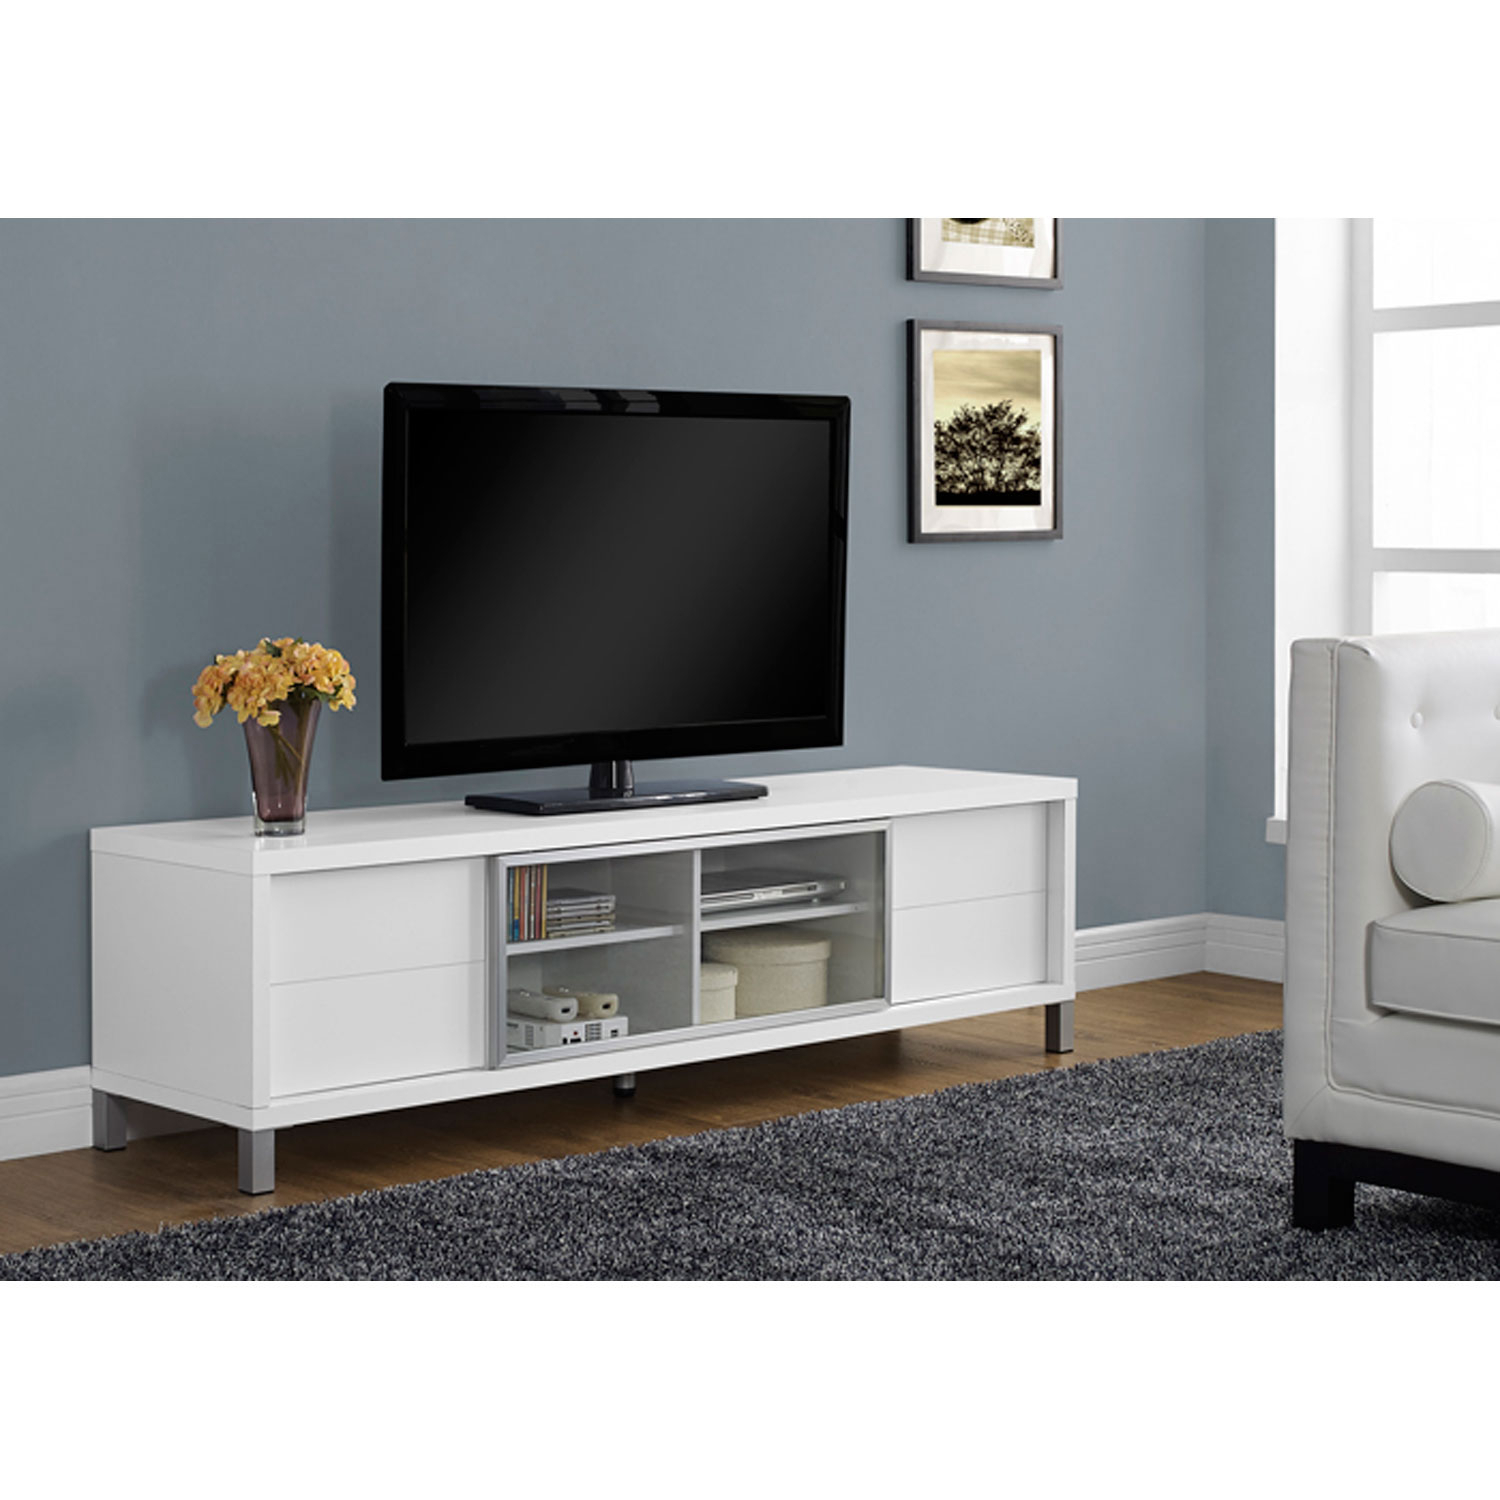 Hawthorne Ave White 70 Inch Tv Console I 2537 | Bellacor Regarding Noah Rustic White 66 Inch Tv Stands (View 8 of 30)